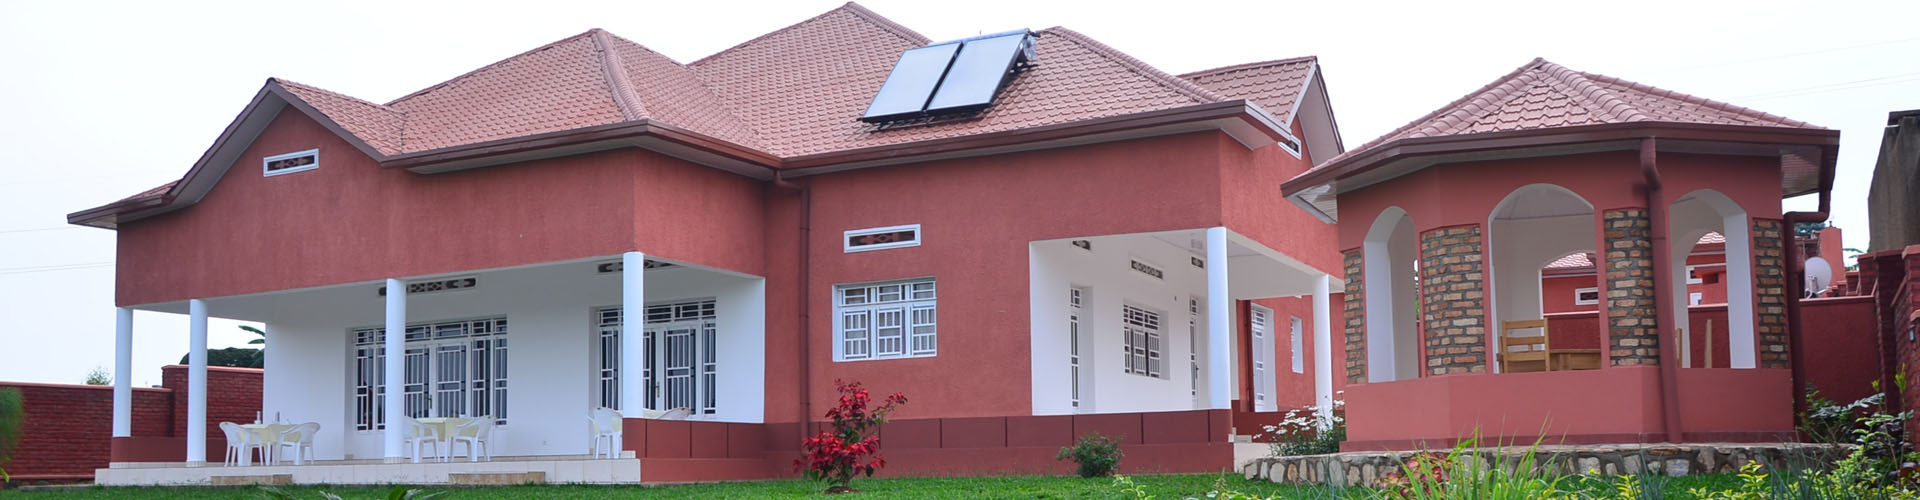 Hotel Sifa located Huye - Taba, Rwanda. on master bathroom designs, two-storey house designs, townhouse designs, retro bath designs, bungalow designs, stone exterior wall designs, living room designs, country modular homes, country looking homes, country living, simple house designs, country bathroom, beach house designs, cottage designs, bedroom designs, elegant white kitchen designs, good phone designs, elegant front porch designs, farmhouse designs, country homes with porches,